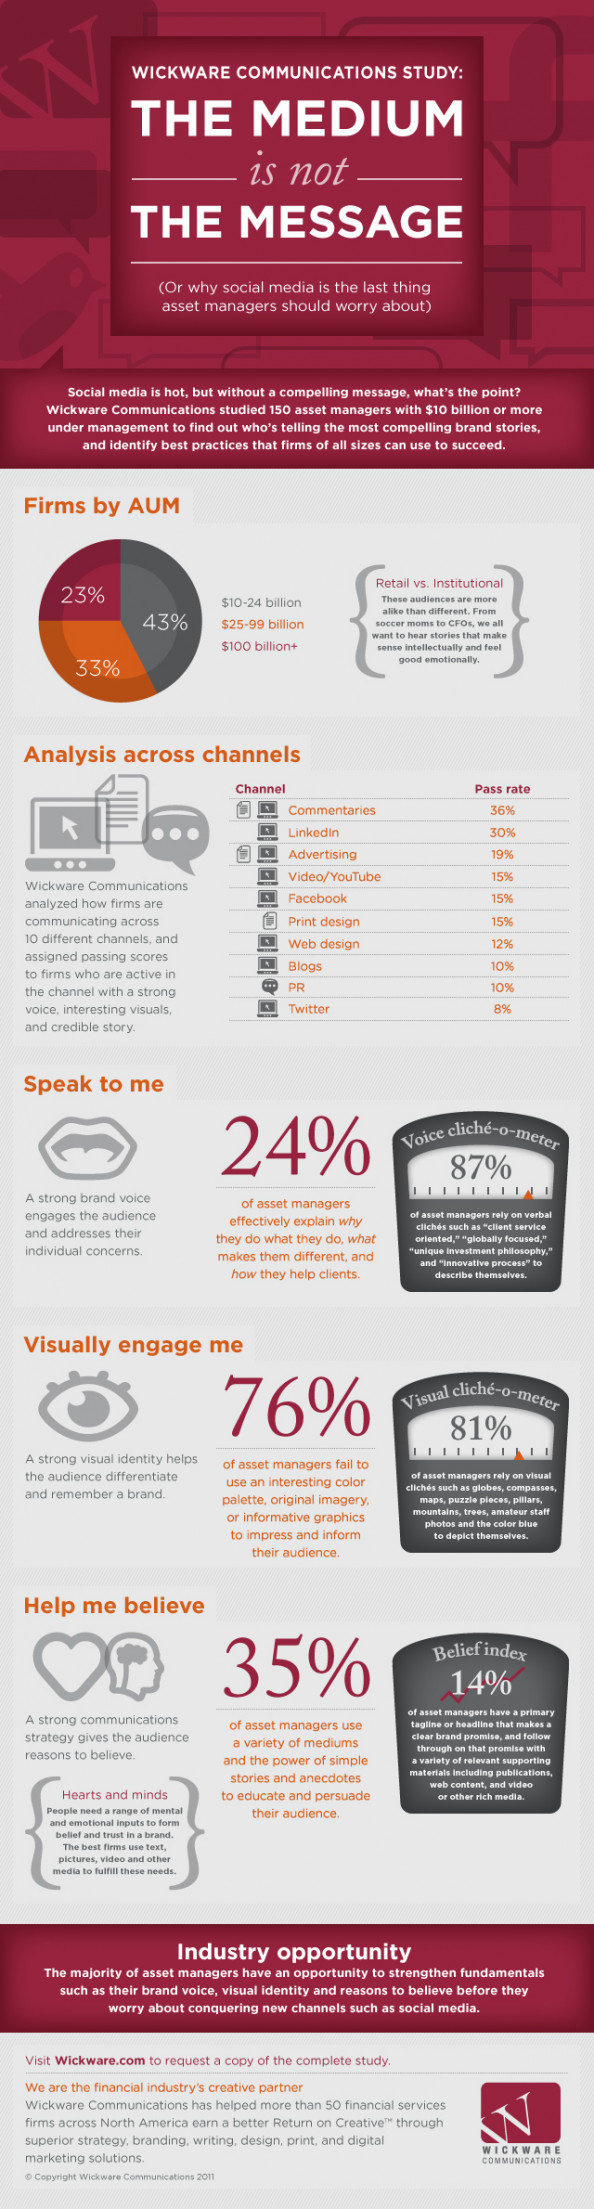 The Medium is Not the Message Infographic